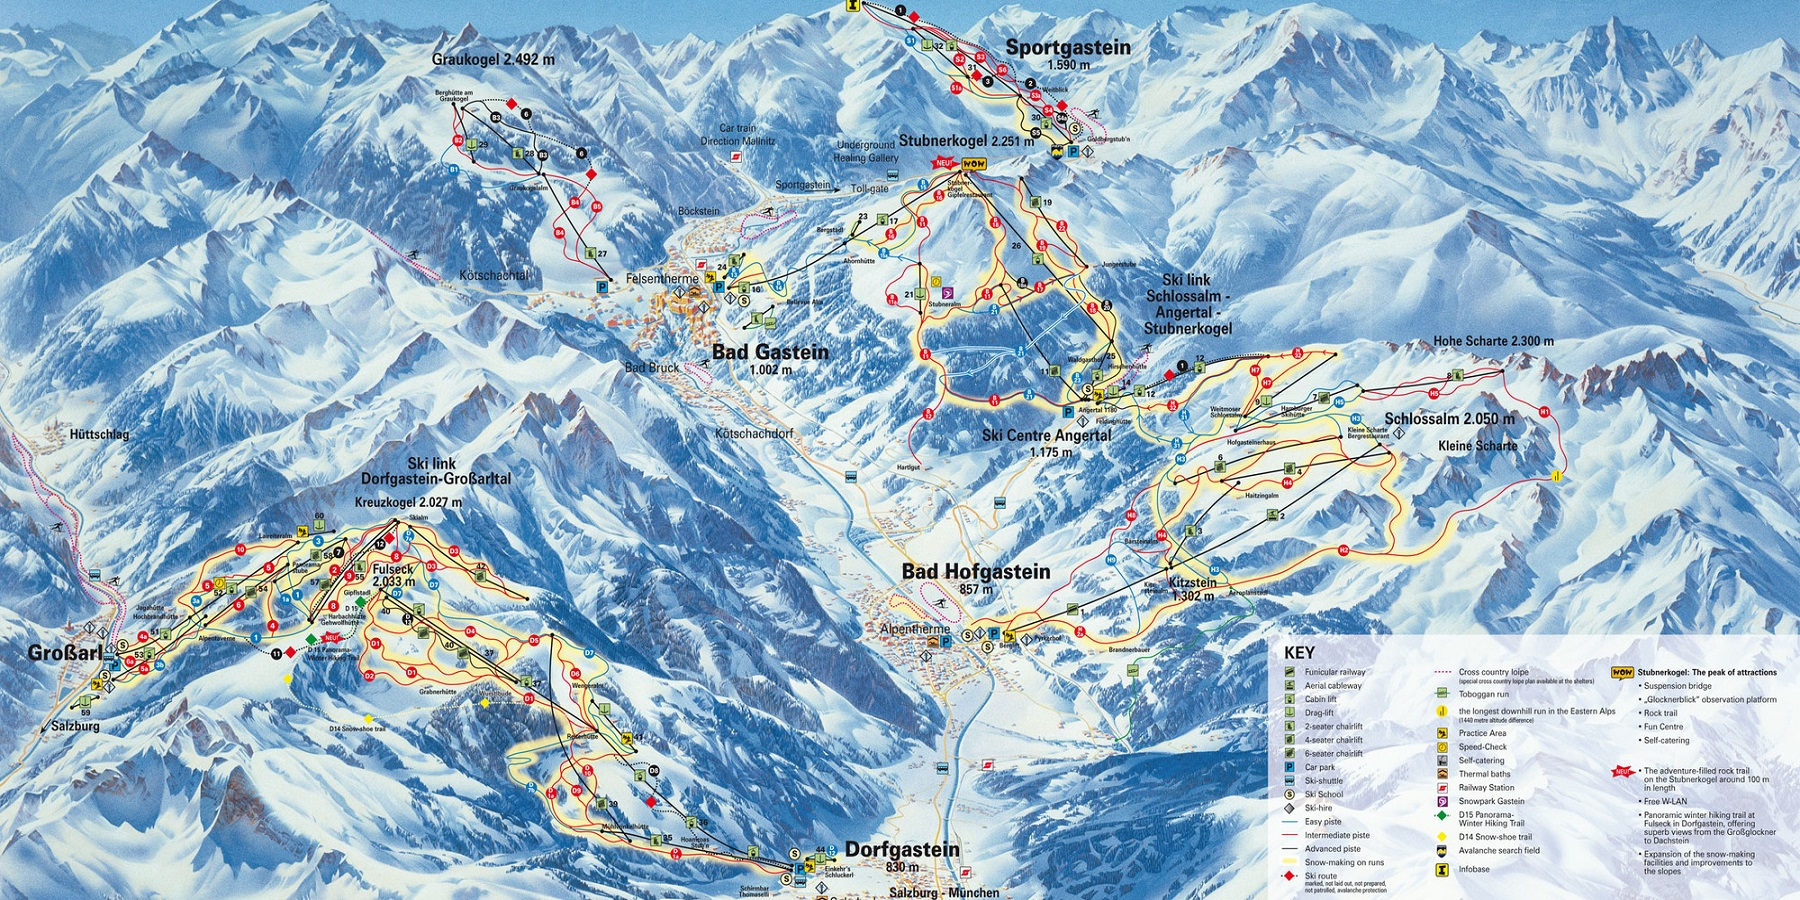 Схема трасс в Бад Гаштайн (Ski map Bad Gastein)